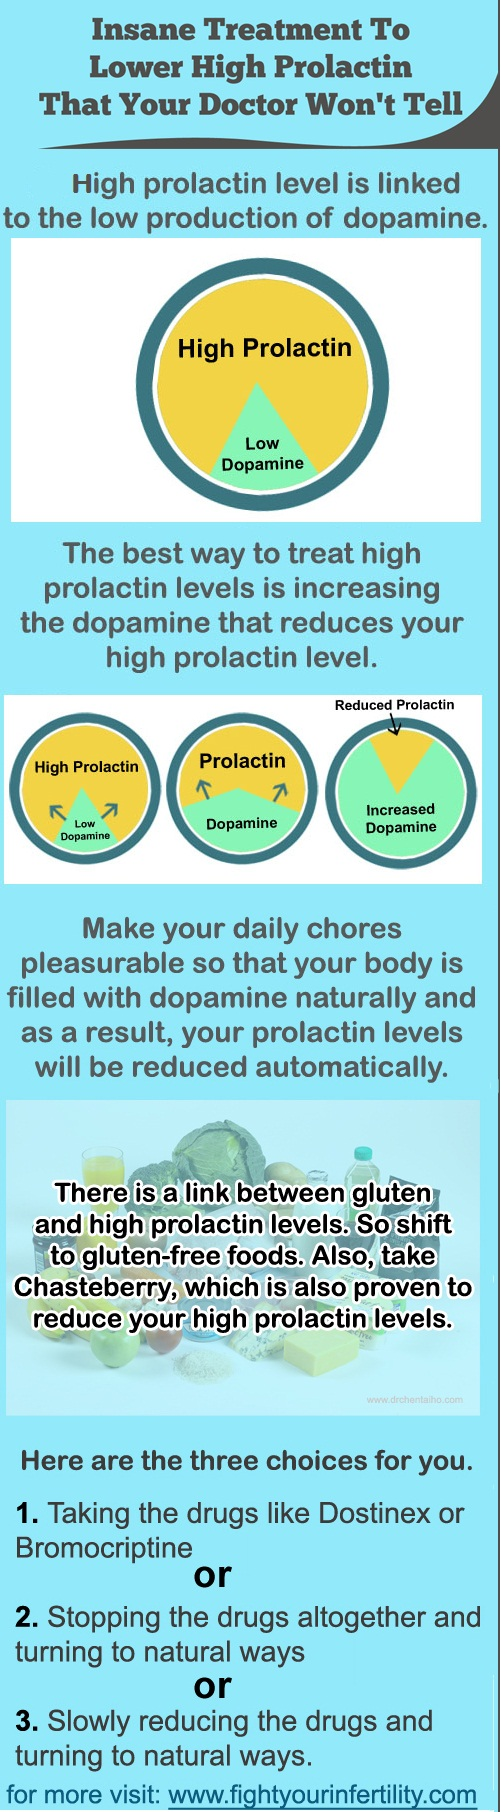 High Prolactin Levels, can high prolactin levels cause infertility, high prolactin levels ovulation, high prolactin levels menstrual cycle, high prolactin levels symptoms, can high prolactin levels cause anxiety, can high prolactin levels cause depression, high prolactin levels dopamine, low production of dopamine, decreased production of dopamine, treat high prolactin levels, increasing dopamine levels, high prolactin levels treatment, how to reduce high prolactin levels naturally, foods that reduce high prolactin levels